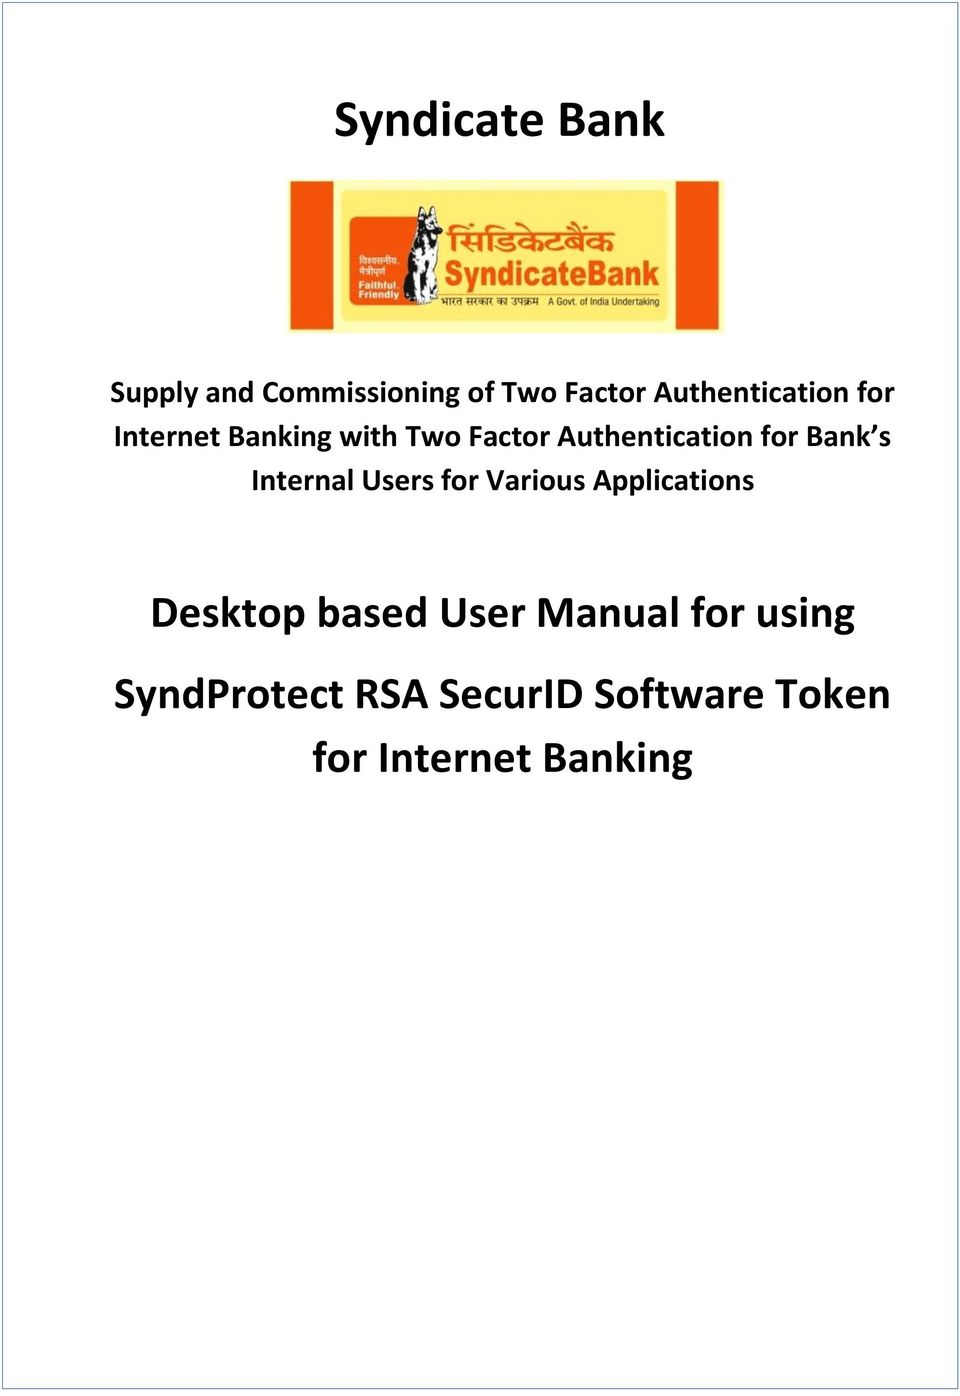 Early access release notes rsa securid token 3. 0. 2 for blackberry.